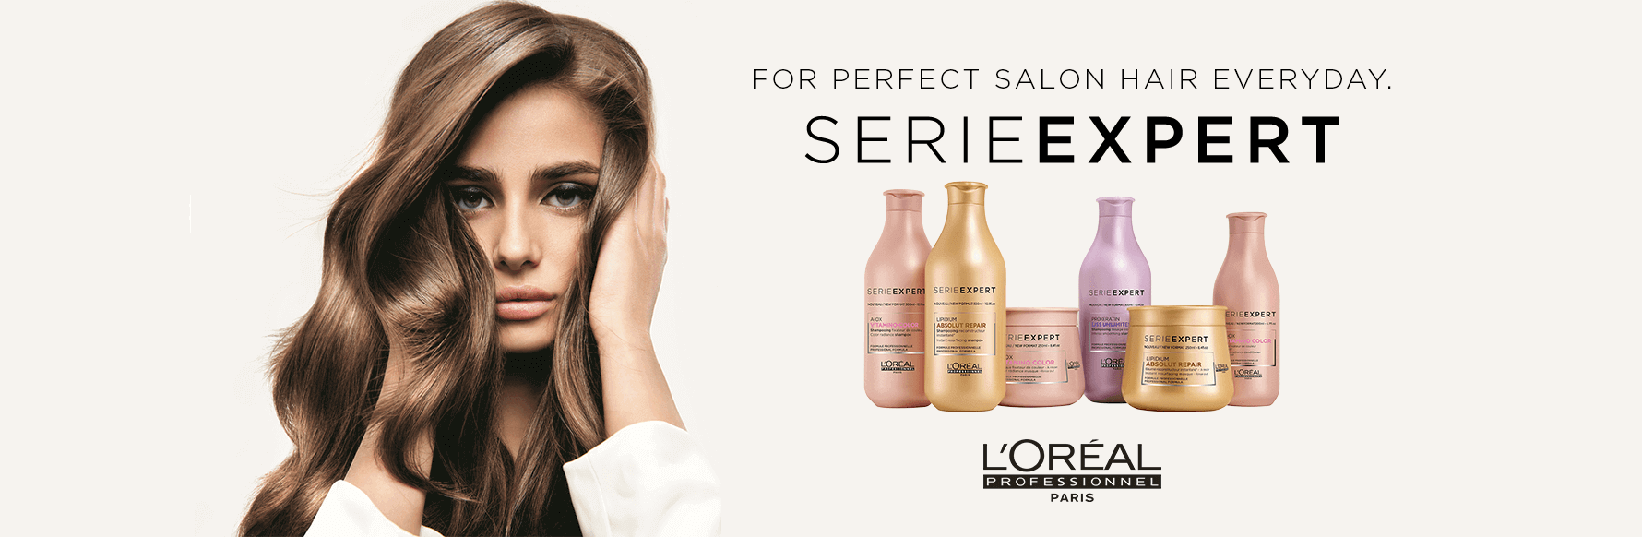 LOreal-Professionnel-banner-s.png